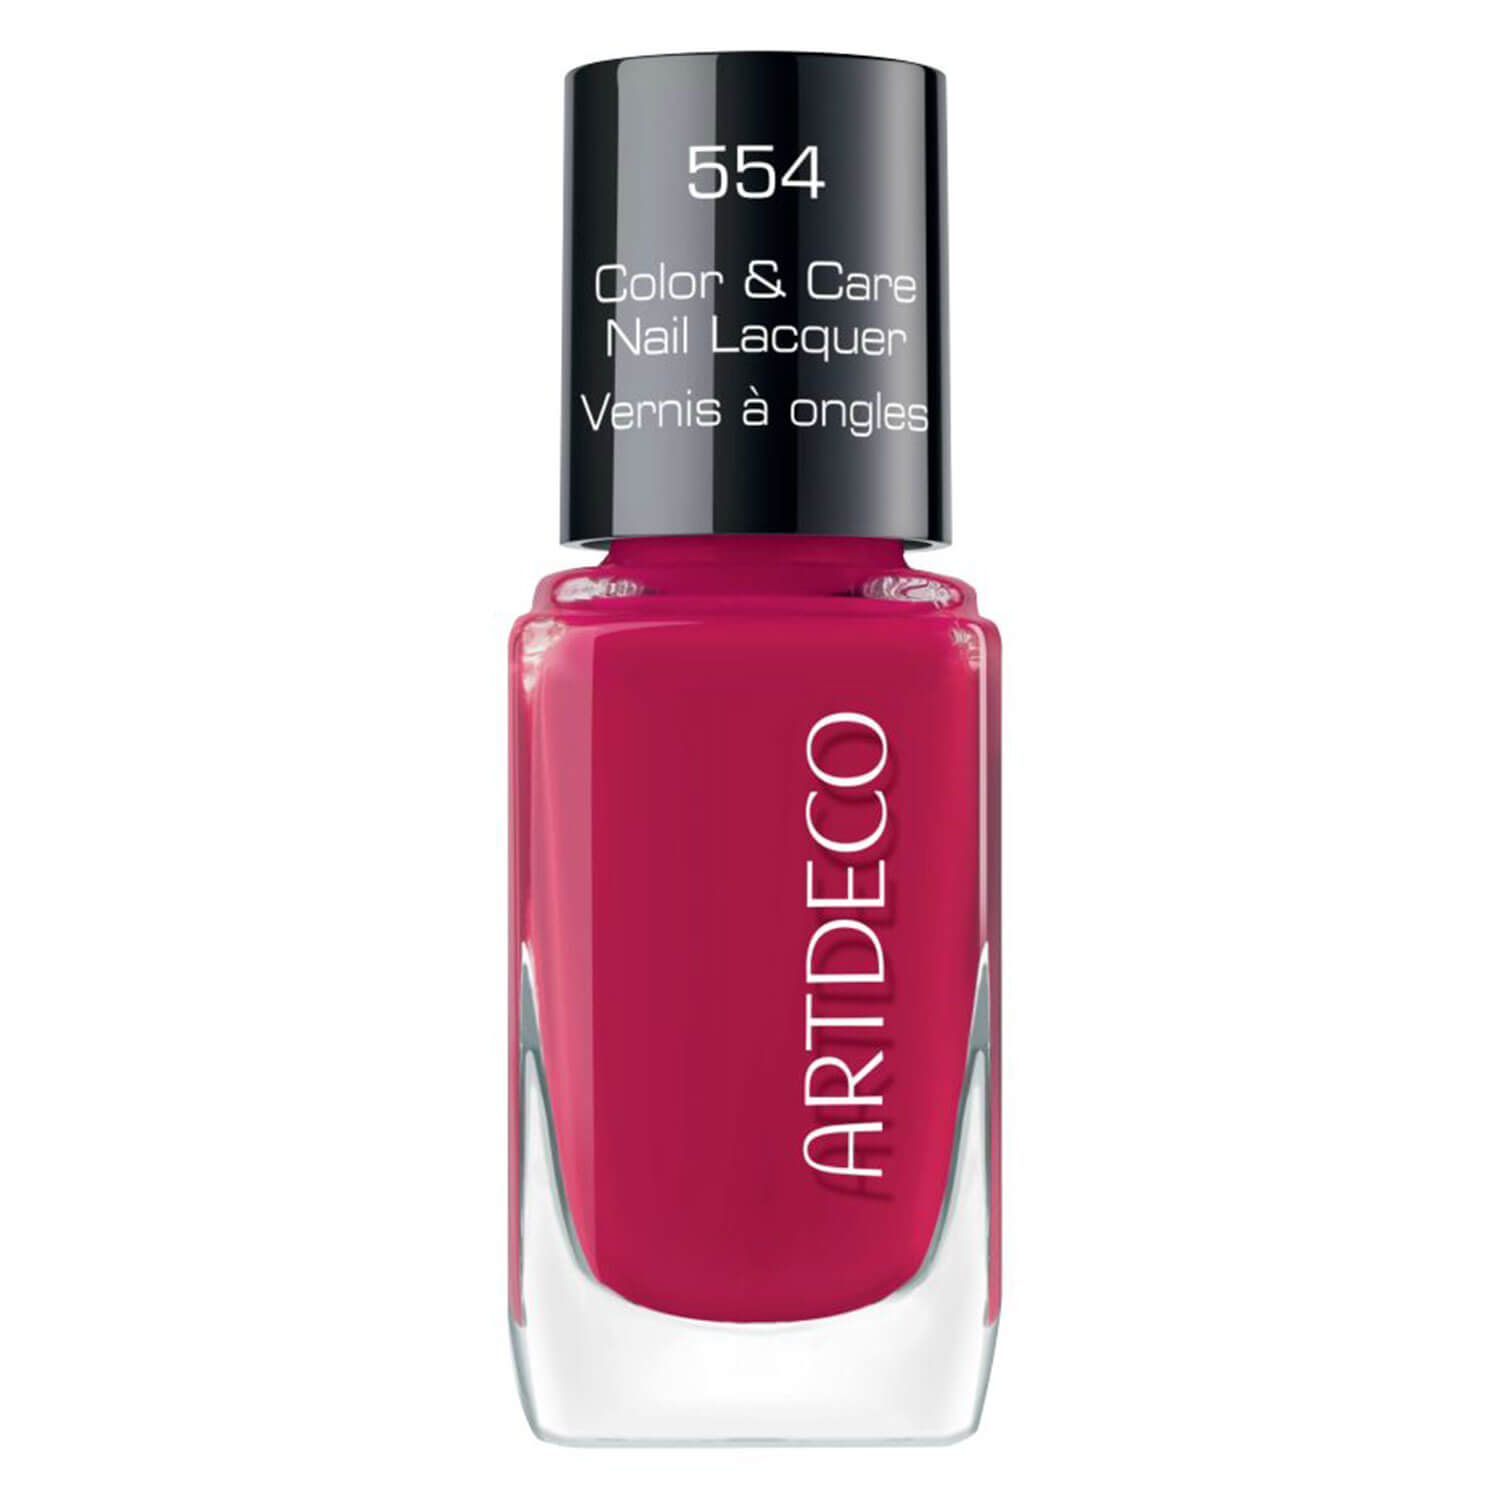 Color & Care - Nail Lacquer Beautiful Raspberry 554